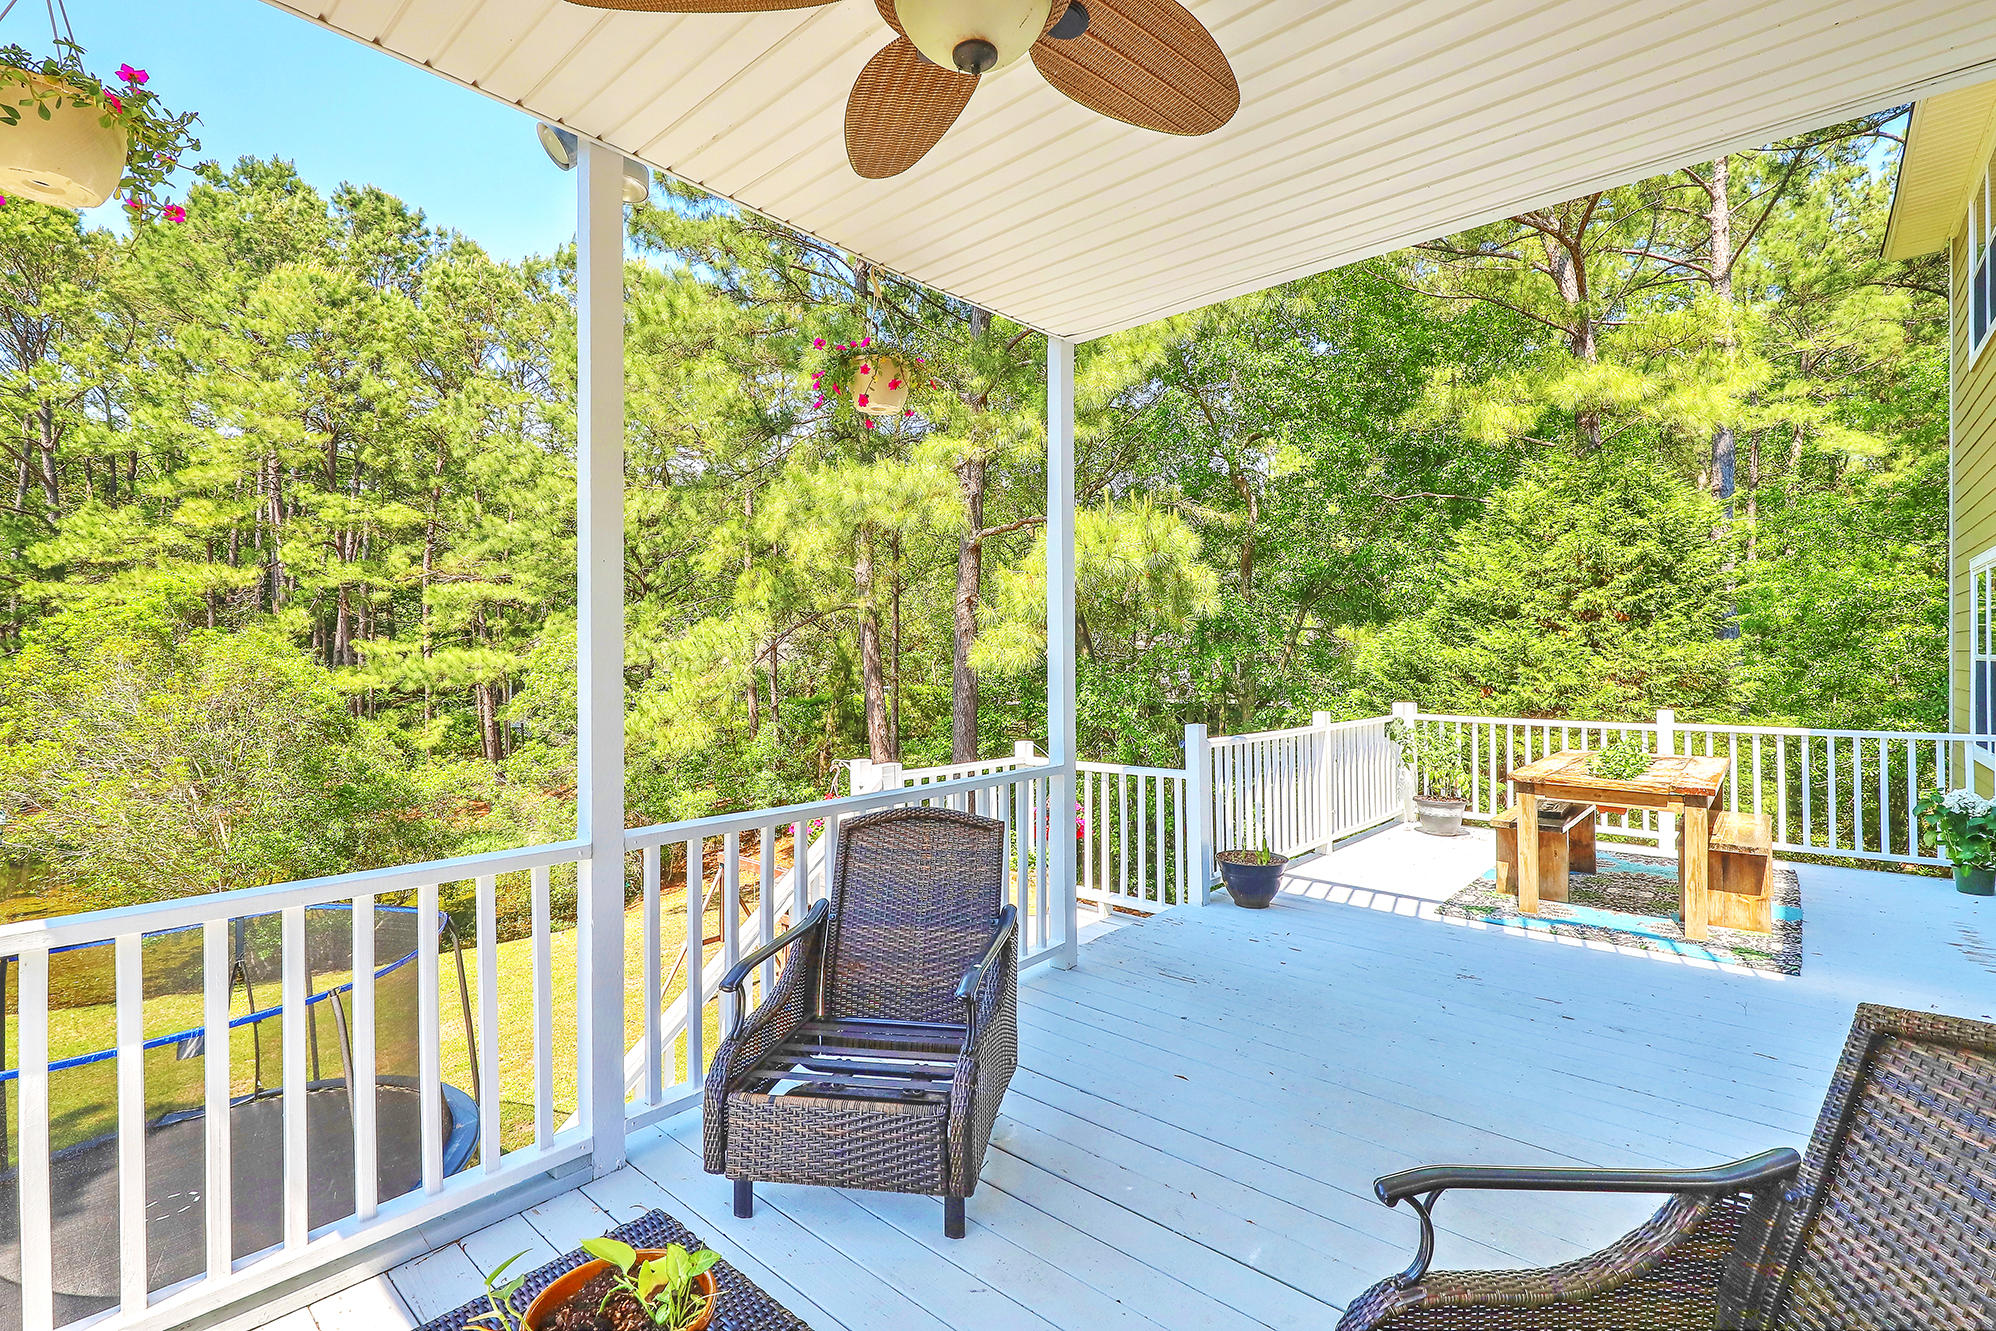 Stono Ferry Homes For Sale - 5104 St Ann, Hollywood, SC - 33